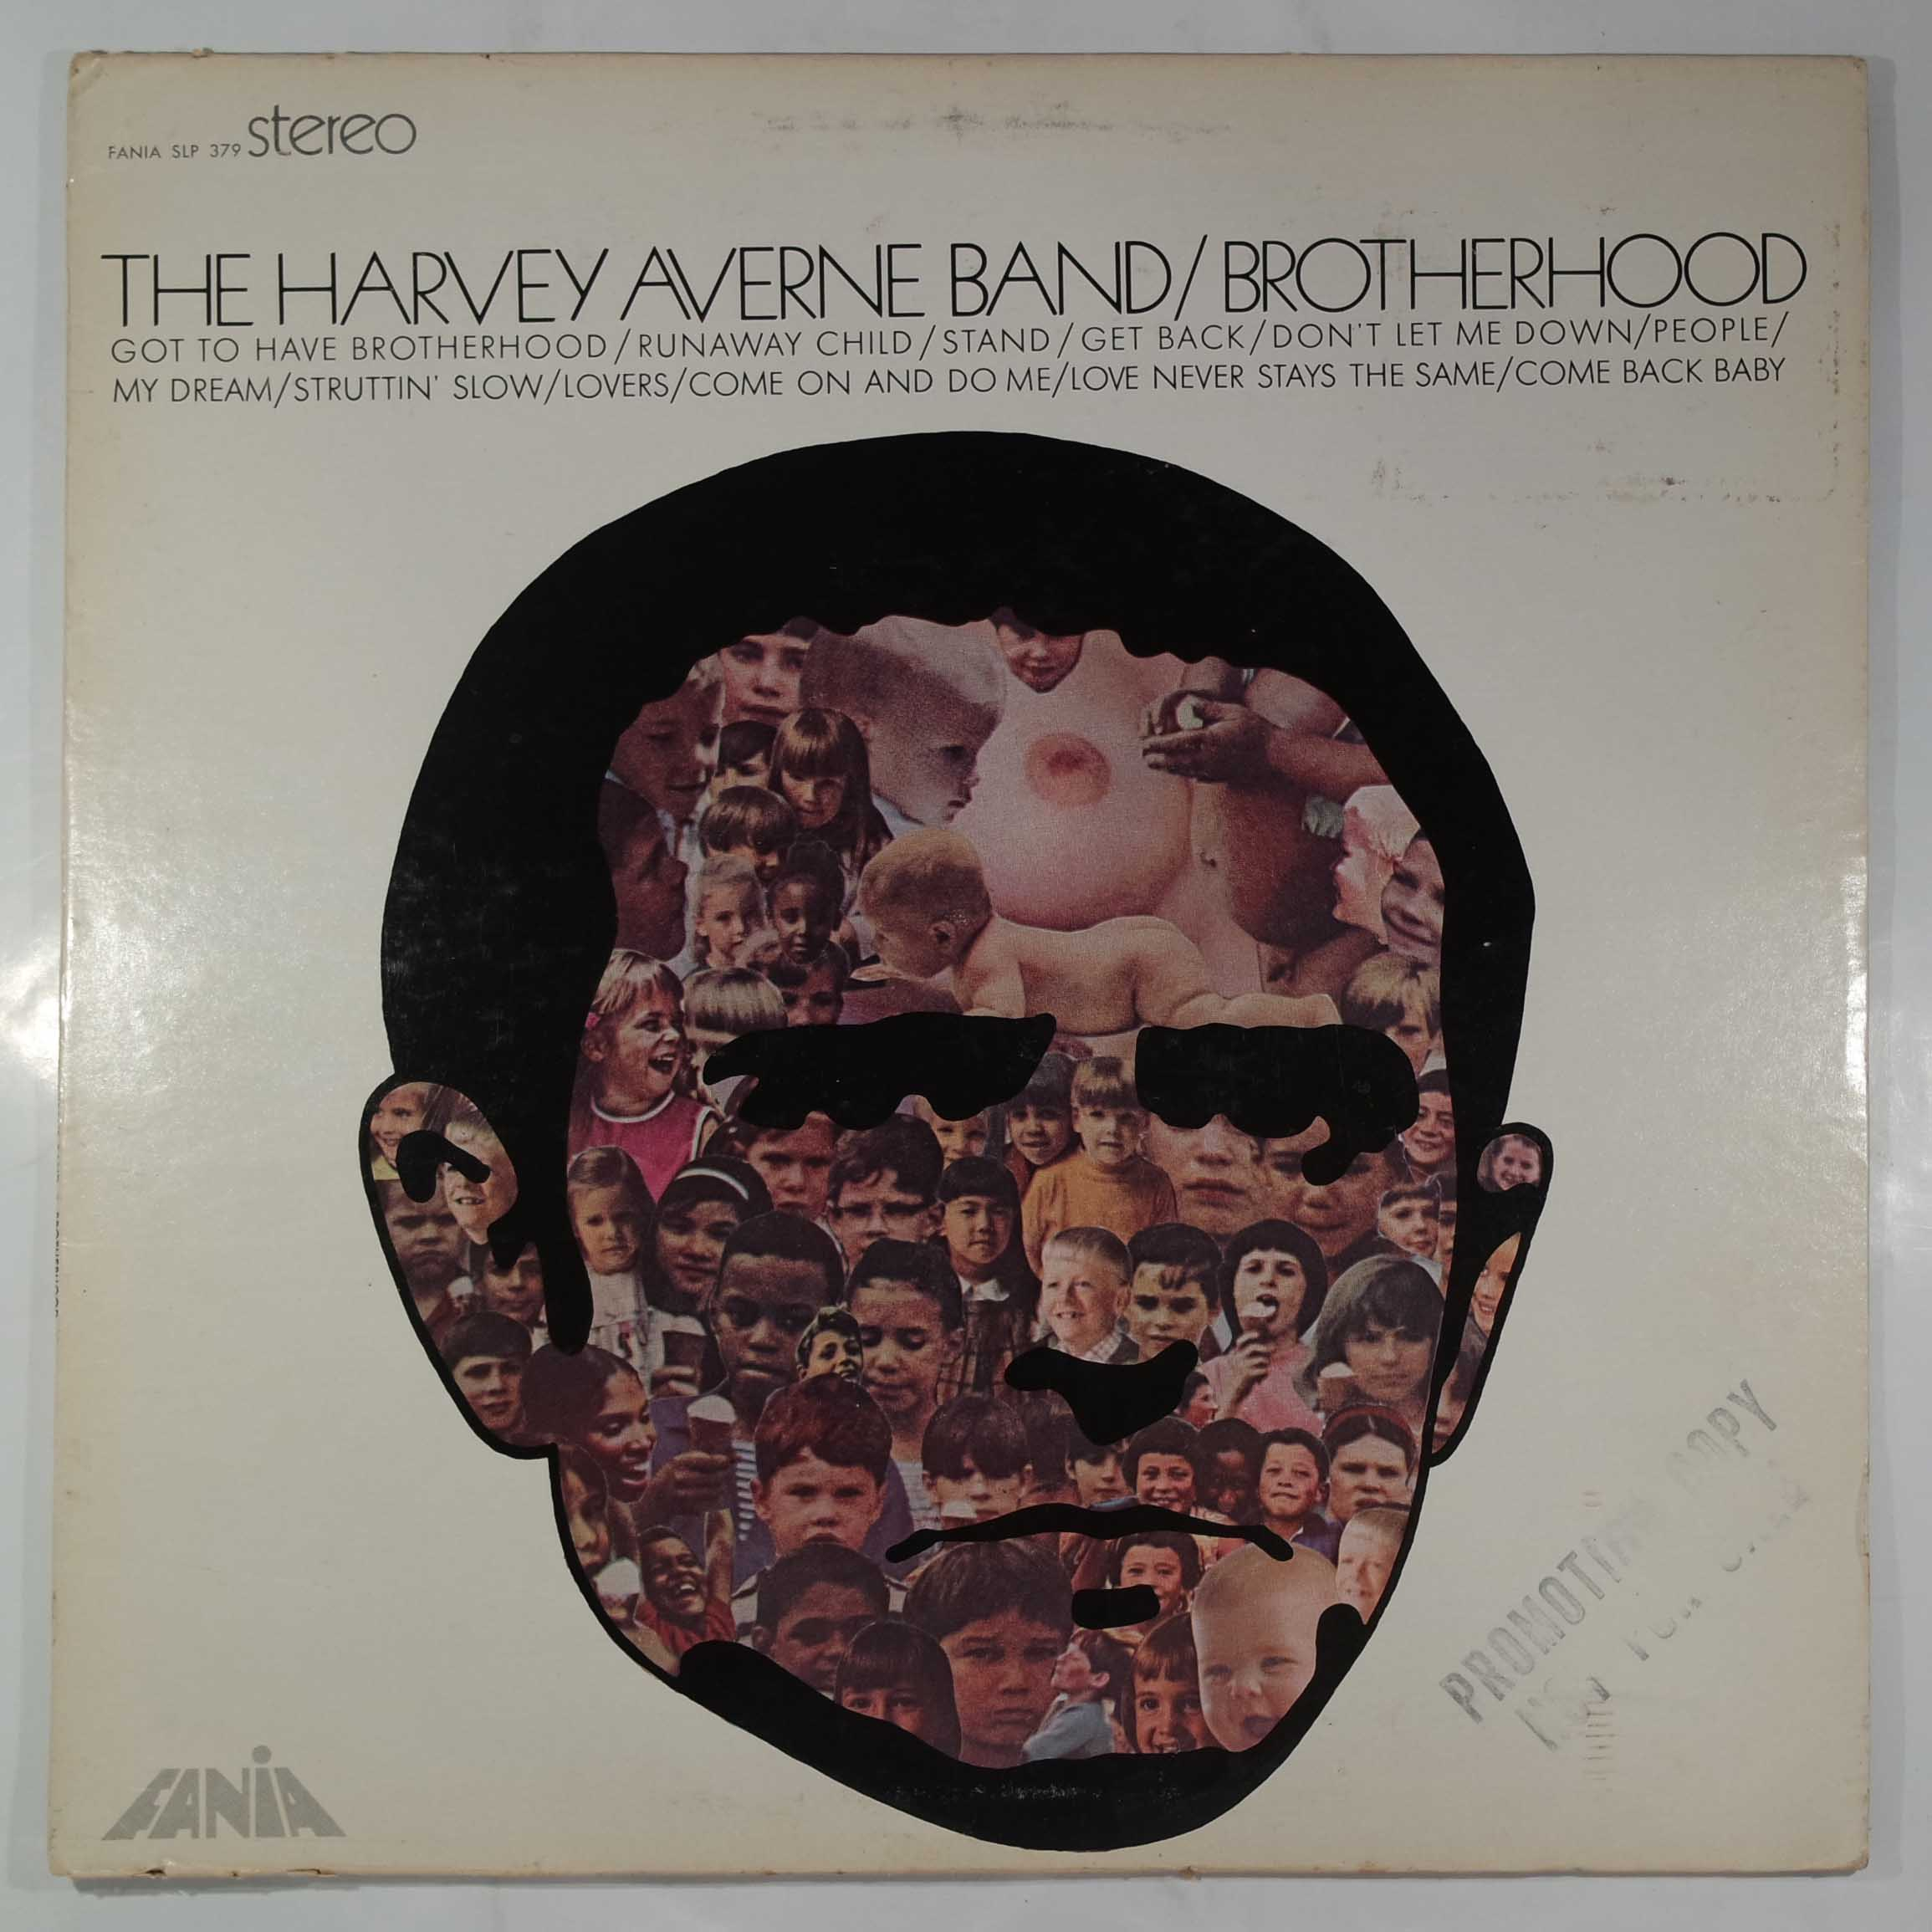 THE HARVEY AVERNE BAND - Brotherhood - LP